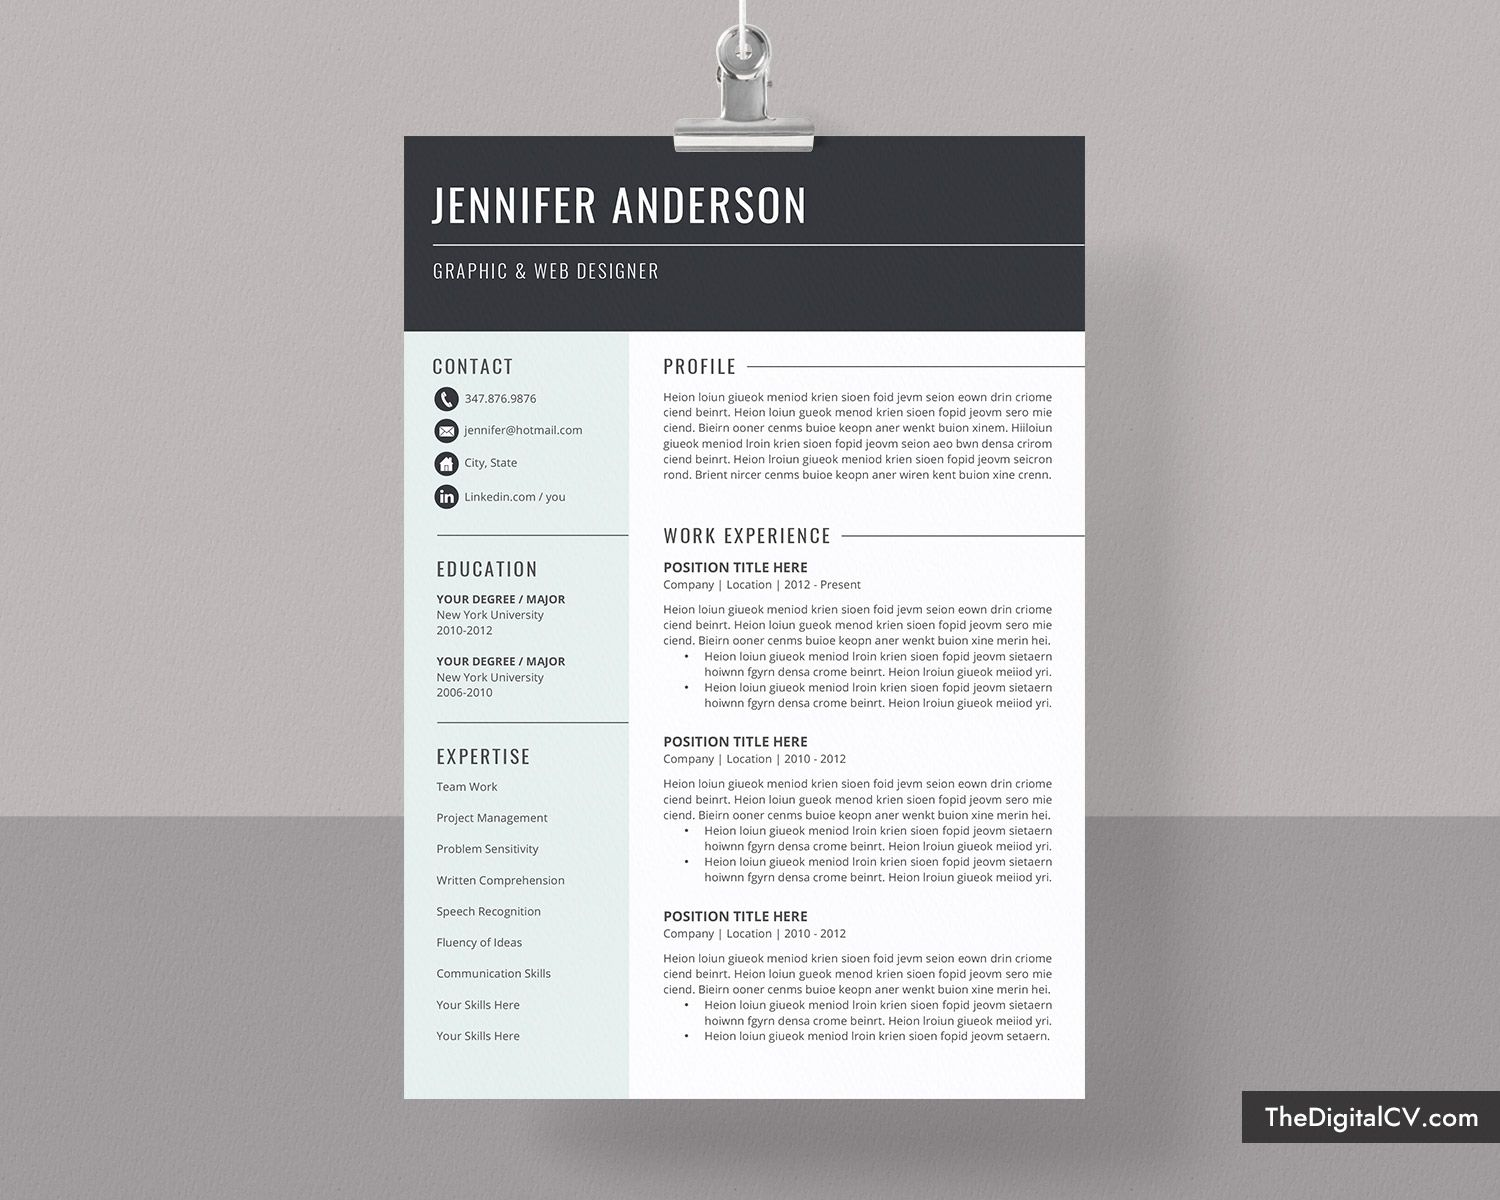 Basic And Simple Resume Template 2020 2021 Cv Template Cover Letter Simple Resume Template Microsoft Word Resume Template Free Professional Resume Template